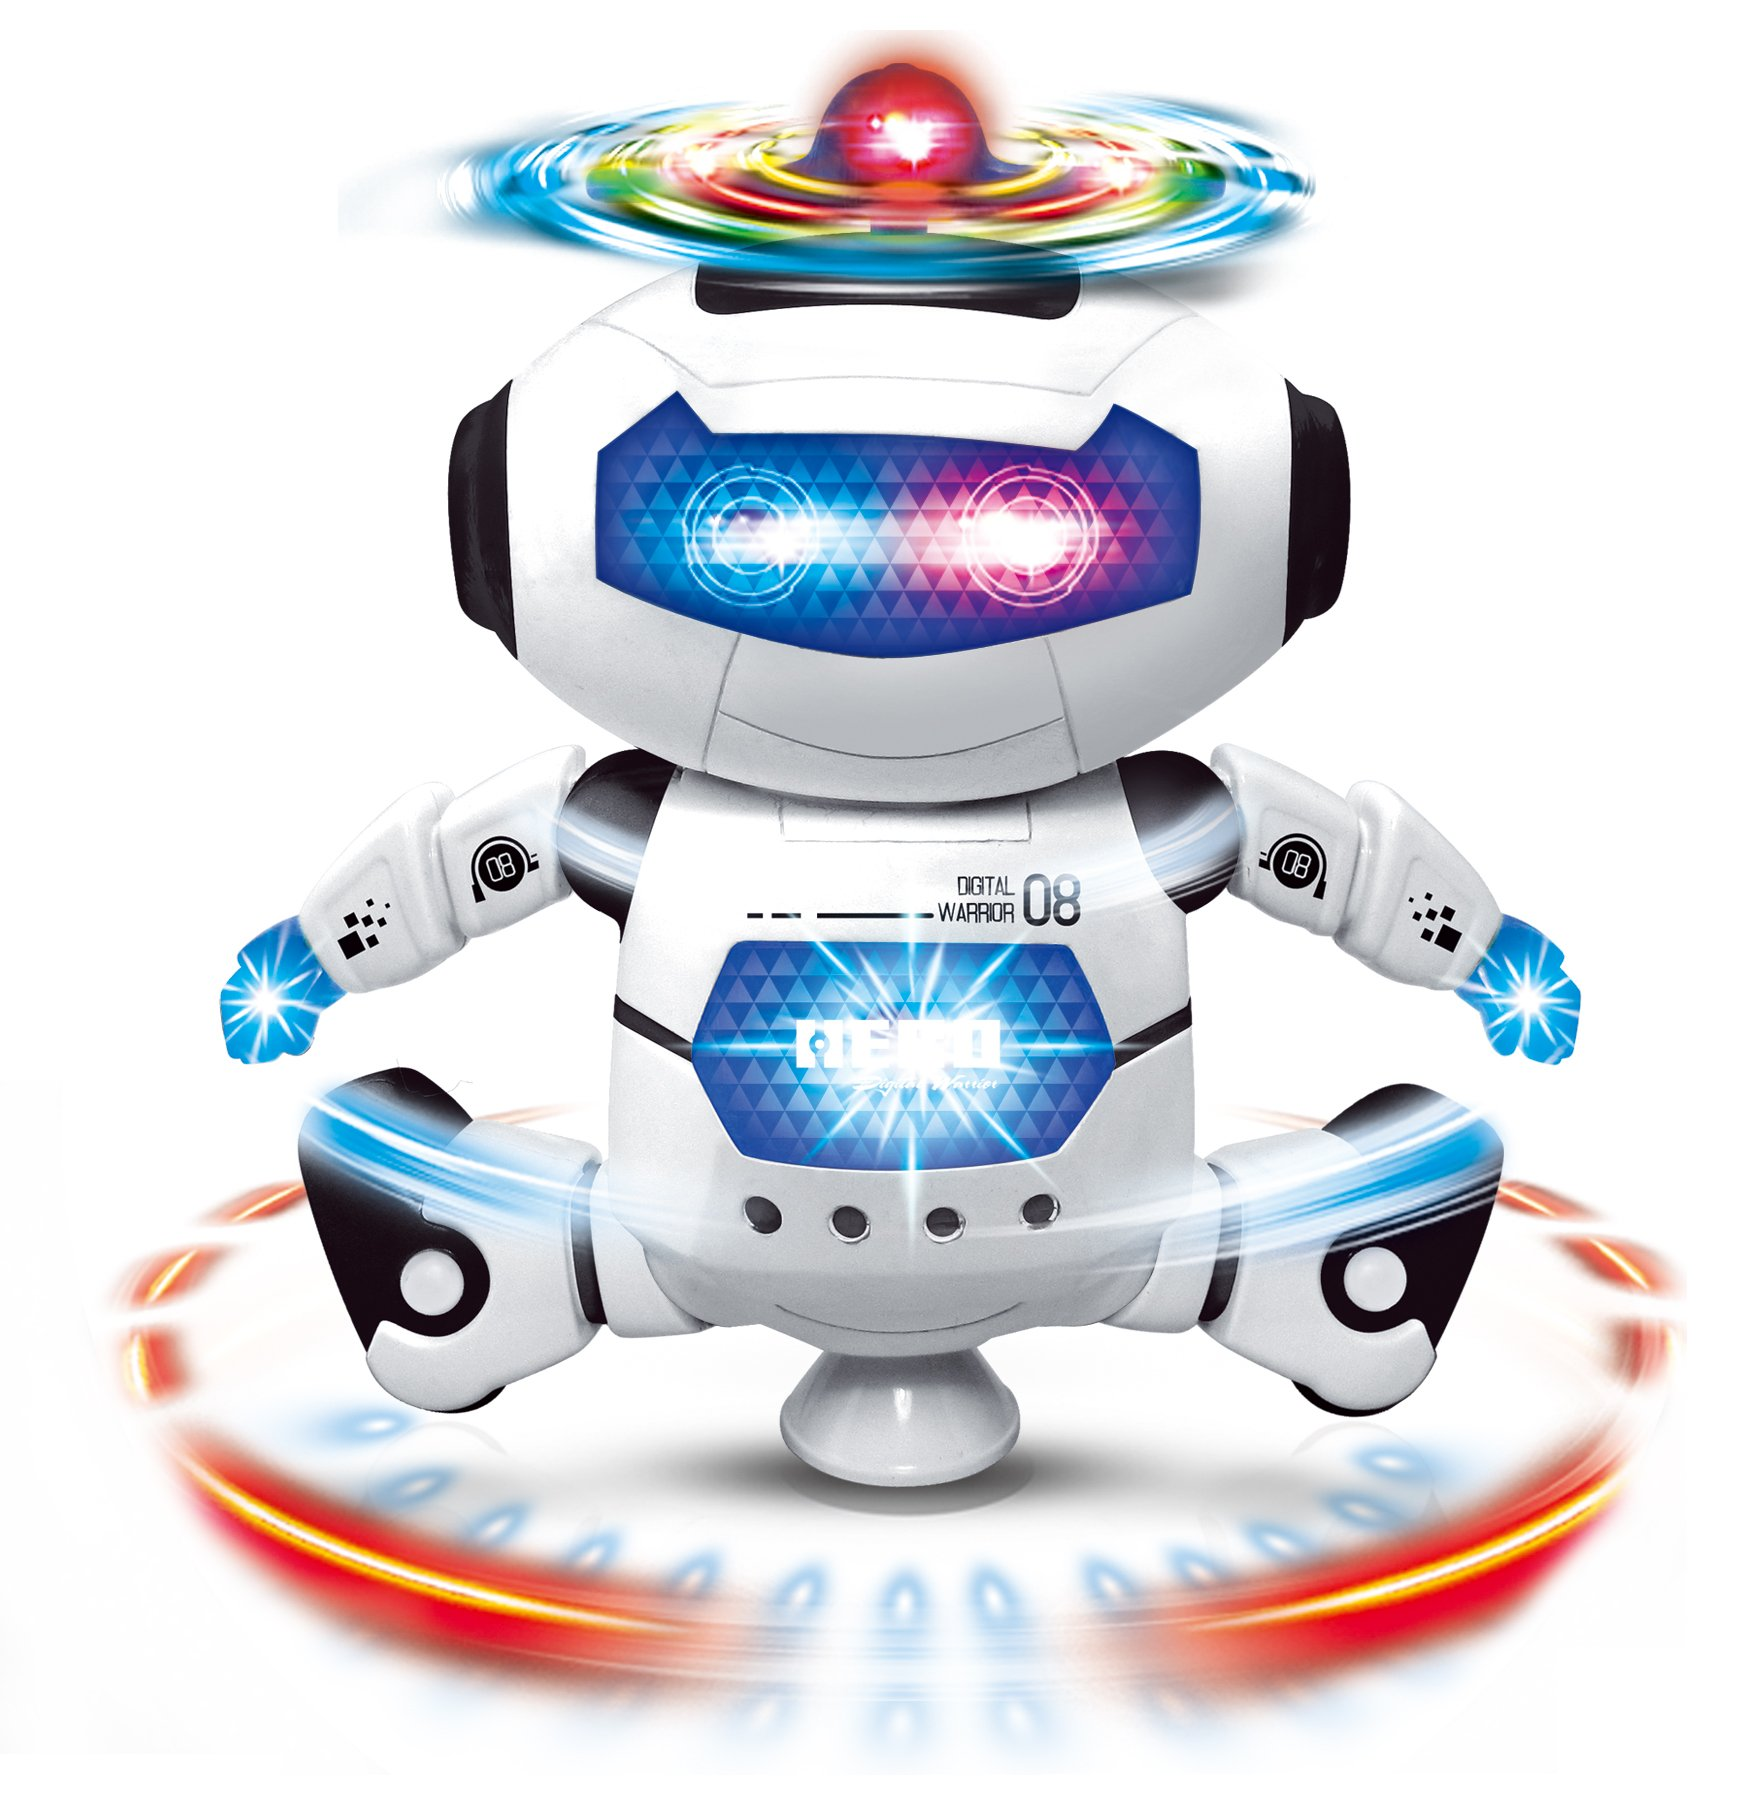 Boys Toys Electronic Walking Dancing Robot Toy - Toddler Toys - Best Gift for Boys and Girls 3 years old by CifToys (Image #8)